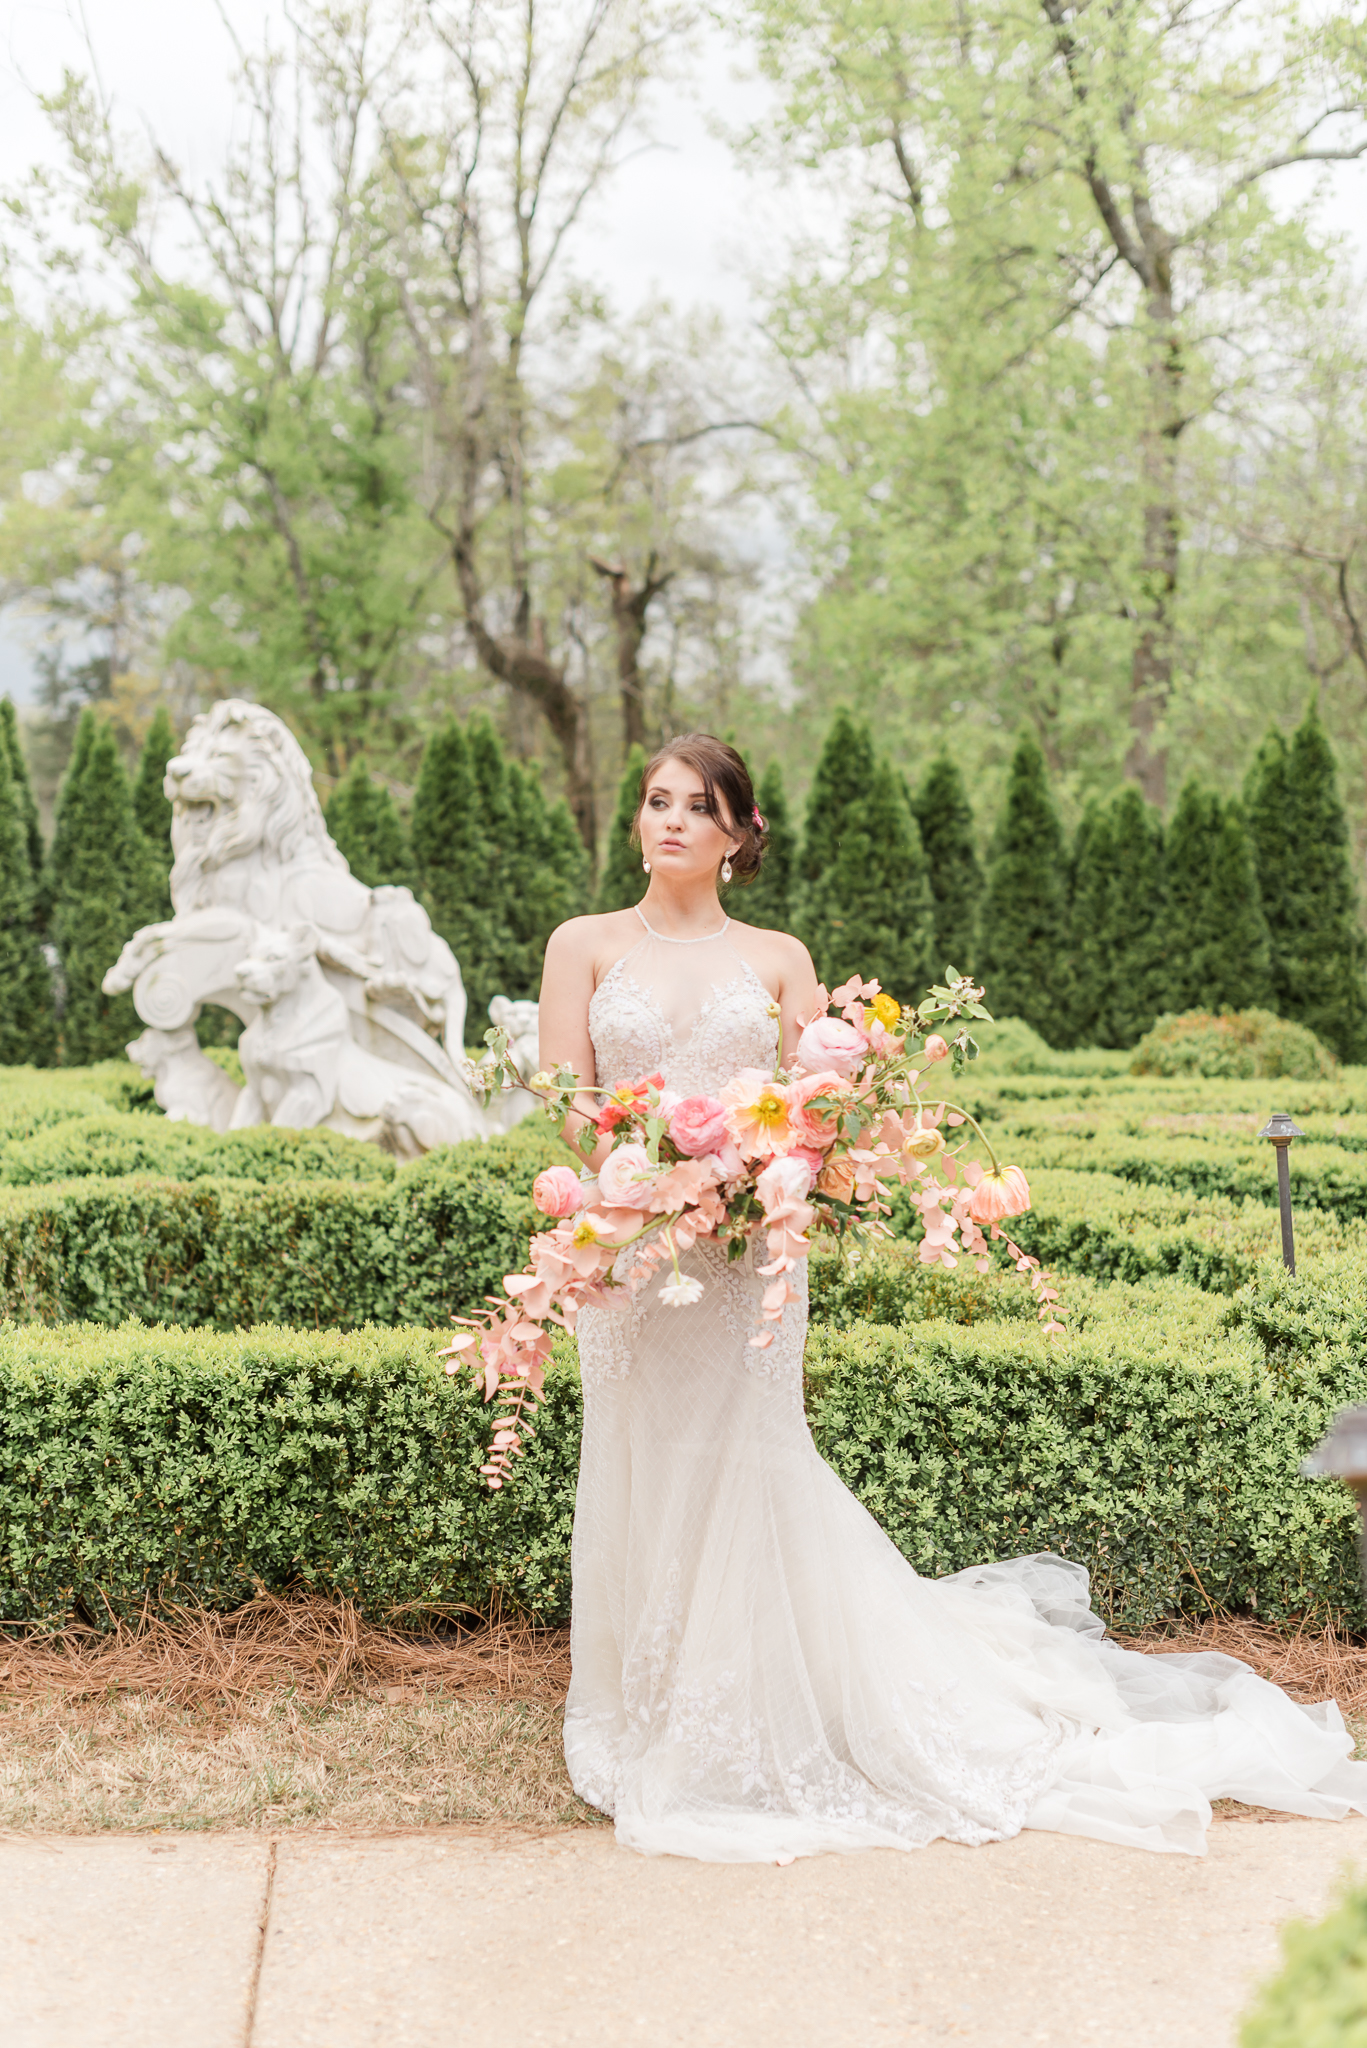 The Best Luxury Light and Airy Wedding Photographers in Europe-8.jpg